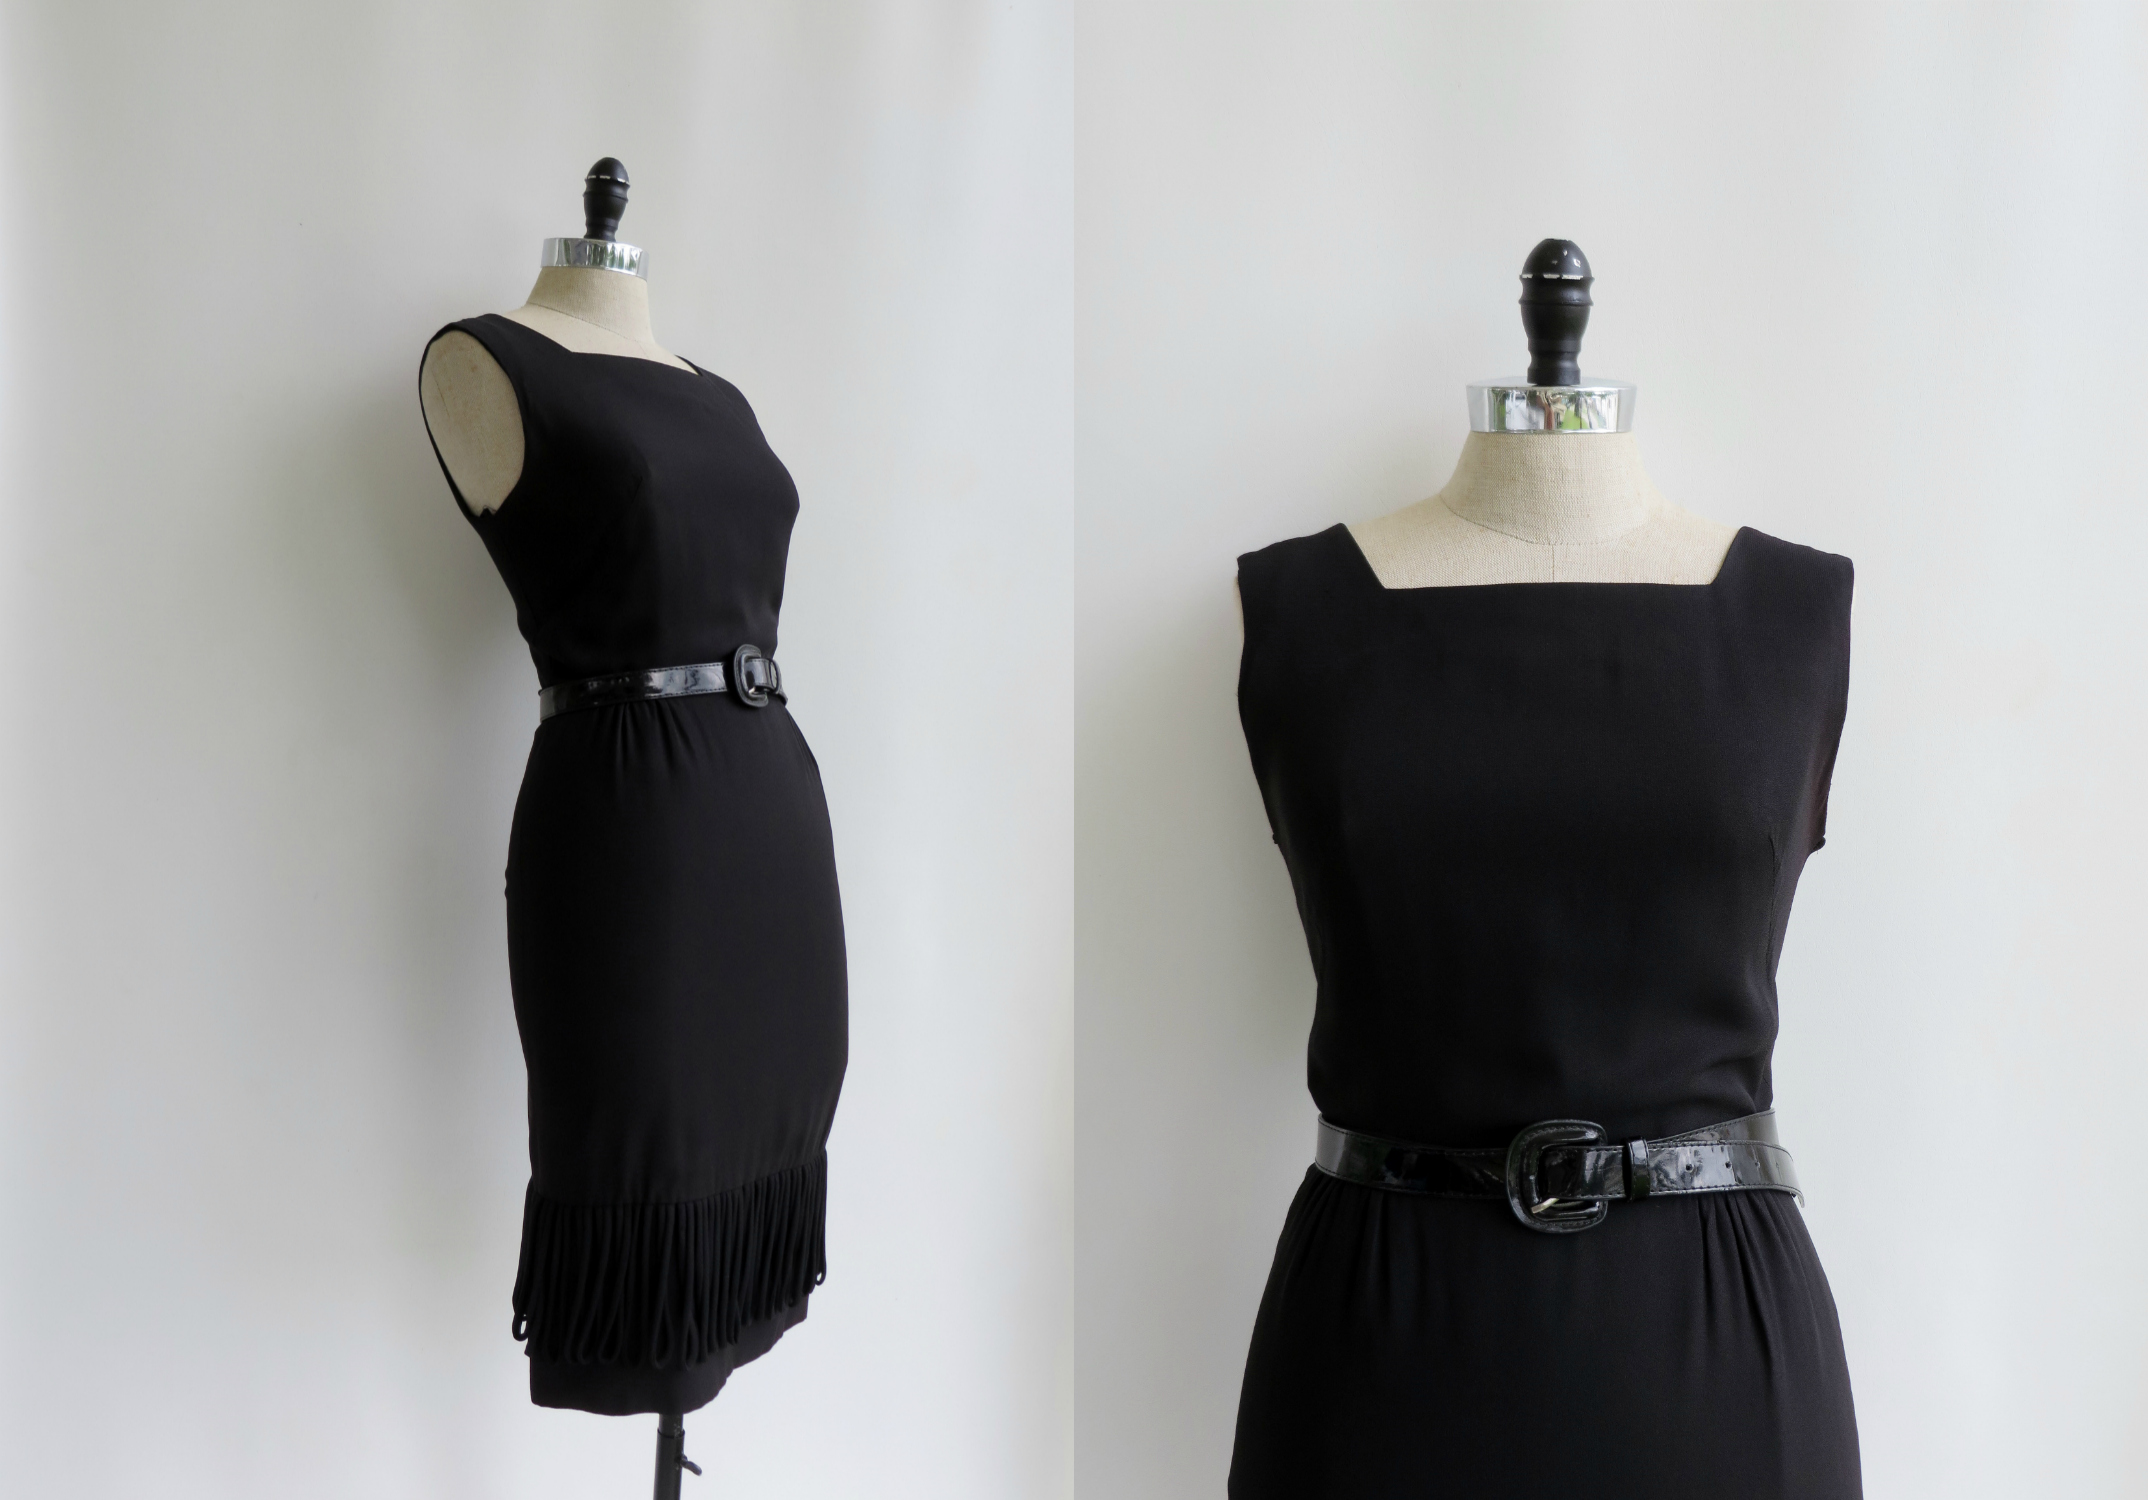 1950's - 1960's classic black dress by Julie Miller of California